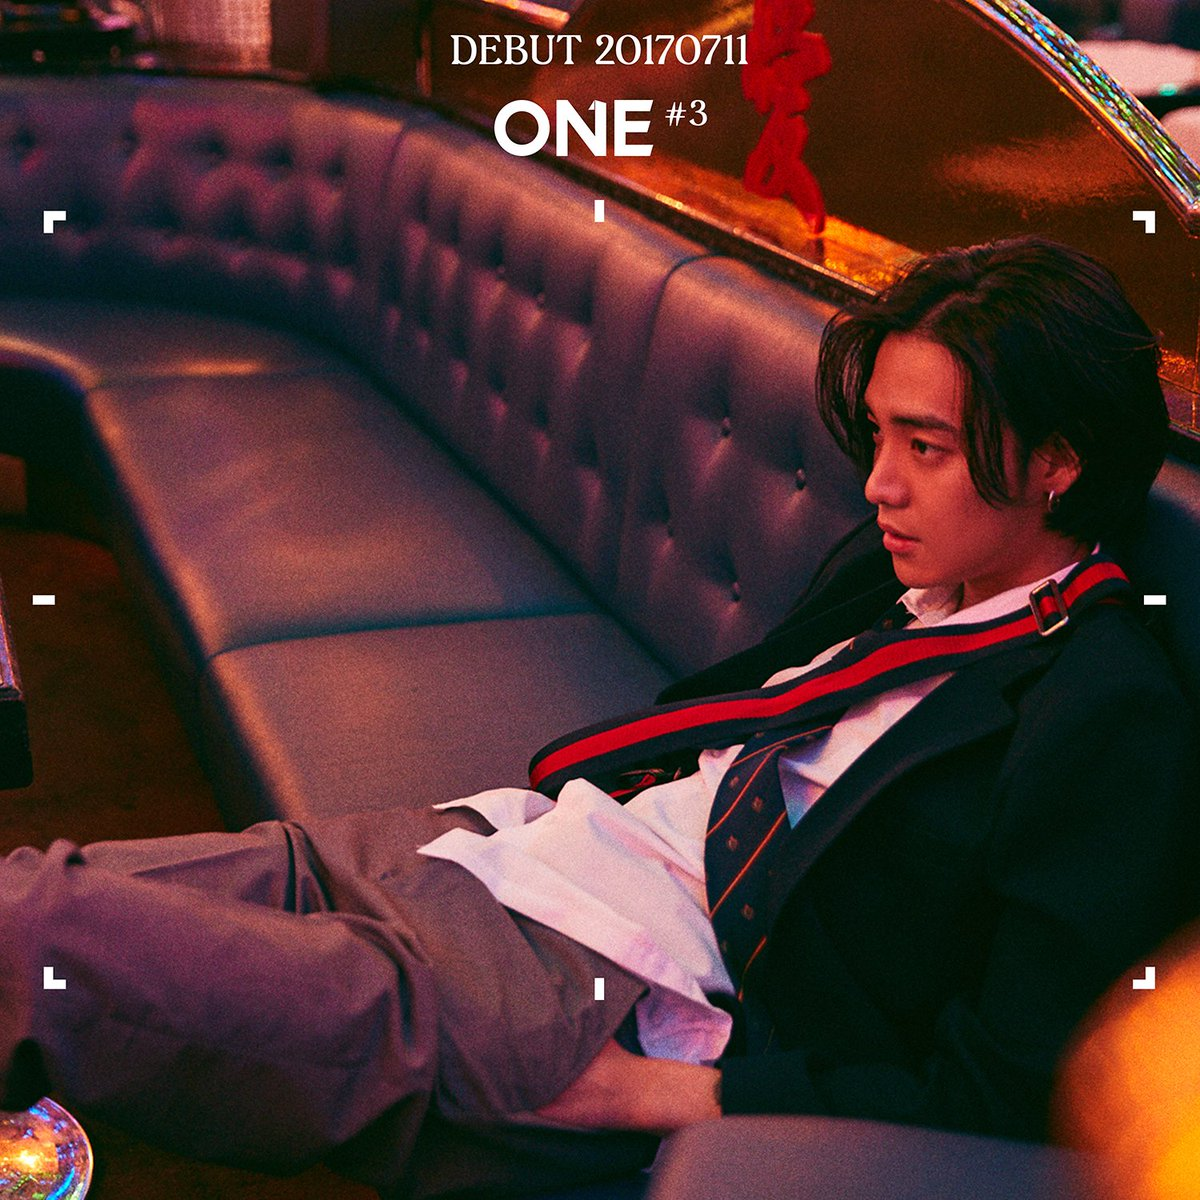 [ONE - DEBUT TEASER #3] originally posted by https://t.co/XZQ3IOI9MY #ONE #3 #원 #정제원 #DEBUT #20170711 #TEASER #YG